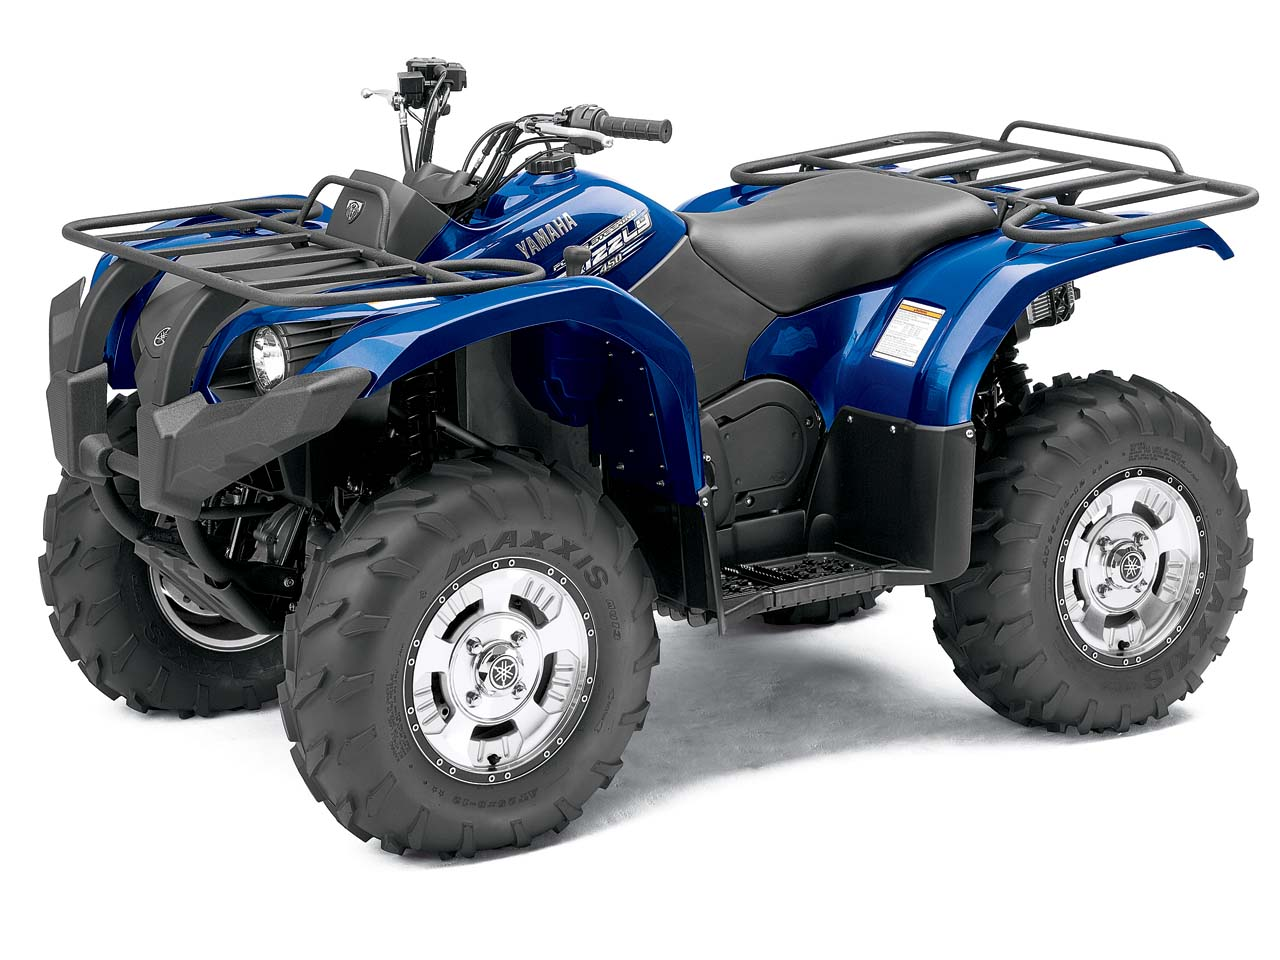 changes and new additions the 2011 yamaha atvs atv illustrated. Black Bedroom Furniture Sets. Home Design Ideas